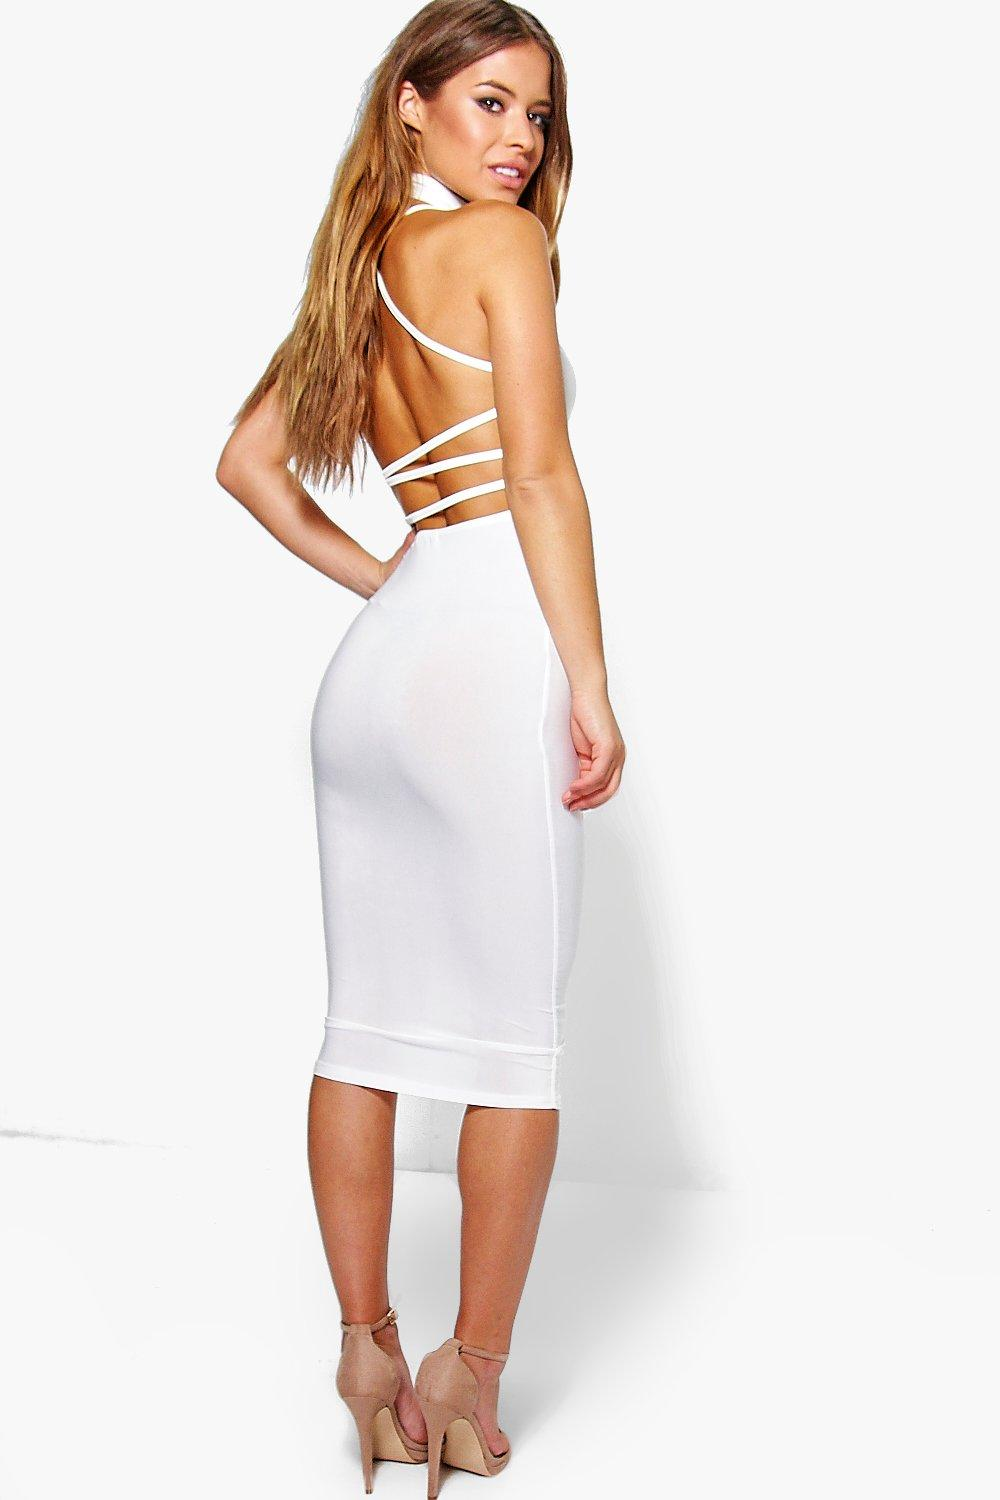 Petite Libby Choker Detail Strappy Back Midi Dress